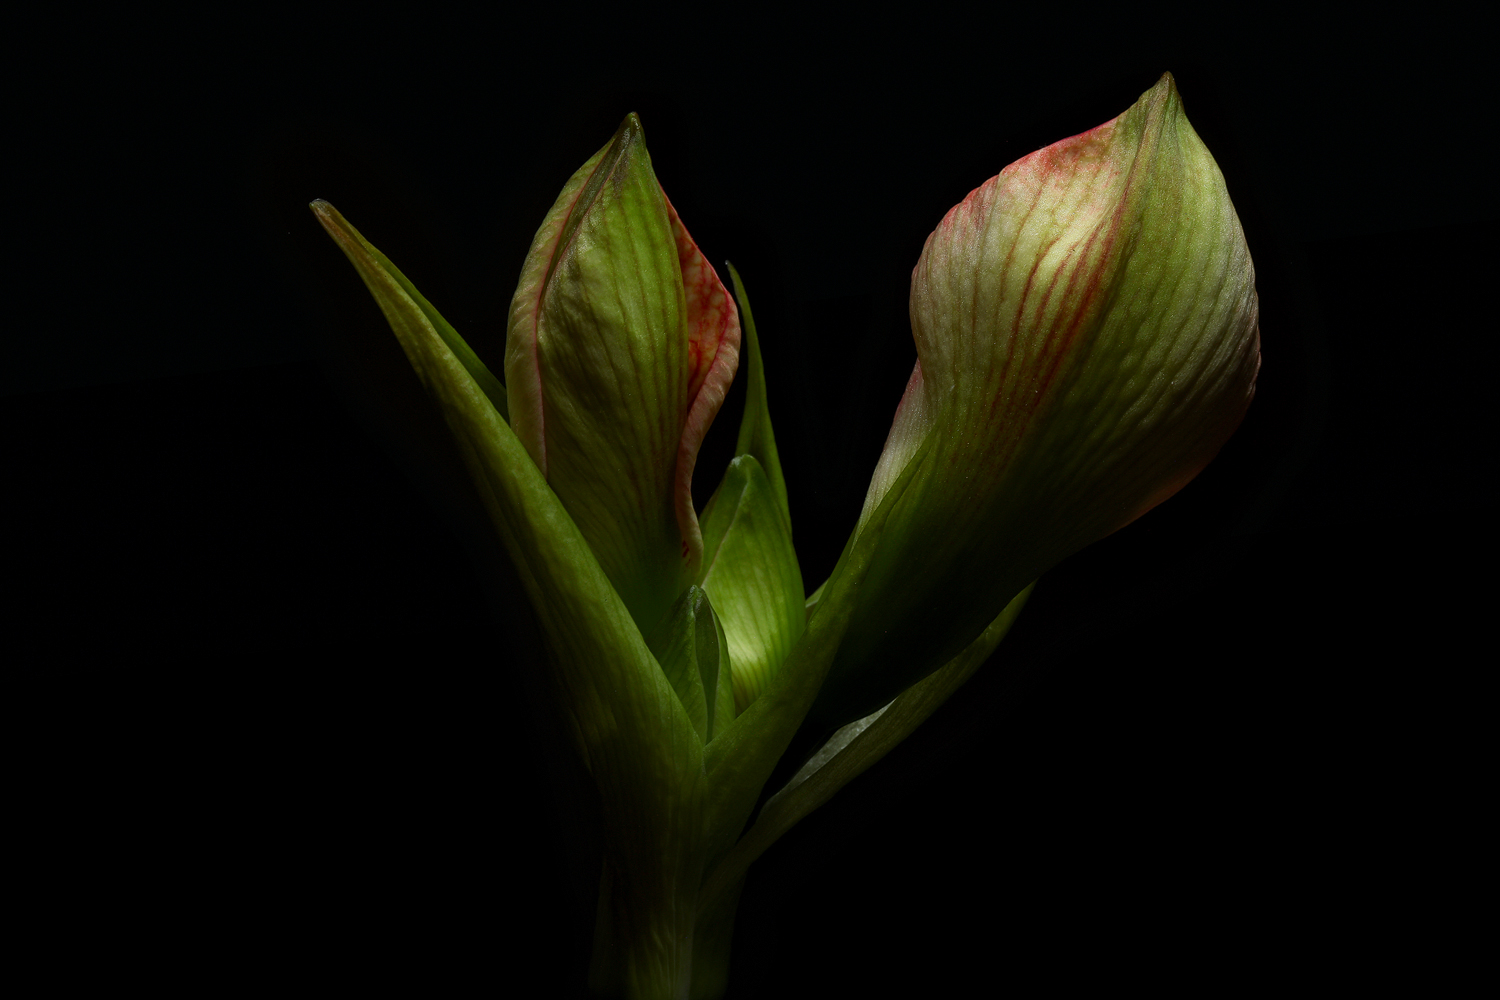 amaryllis buds img aw author sava gregory and ver verena